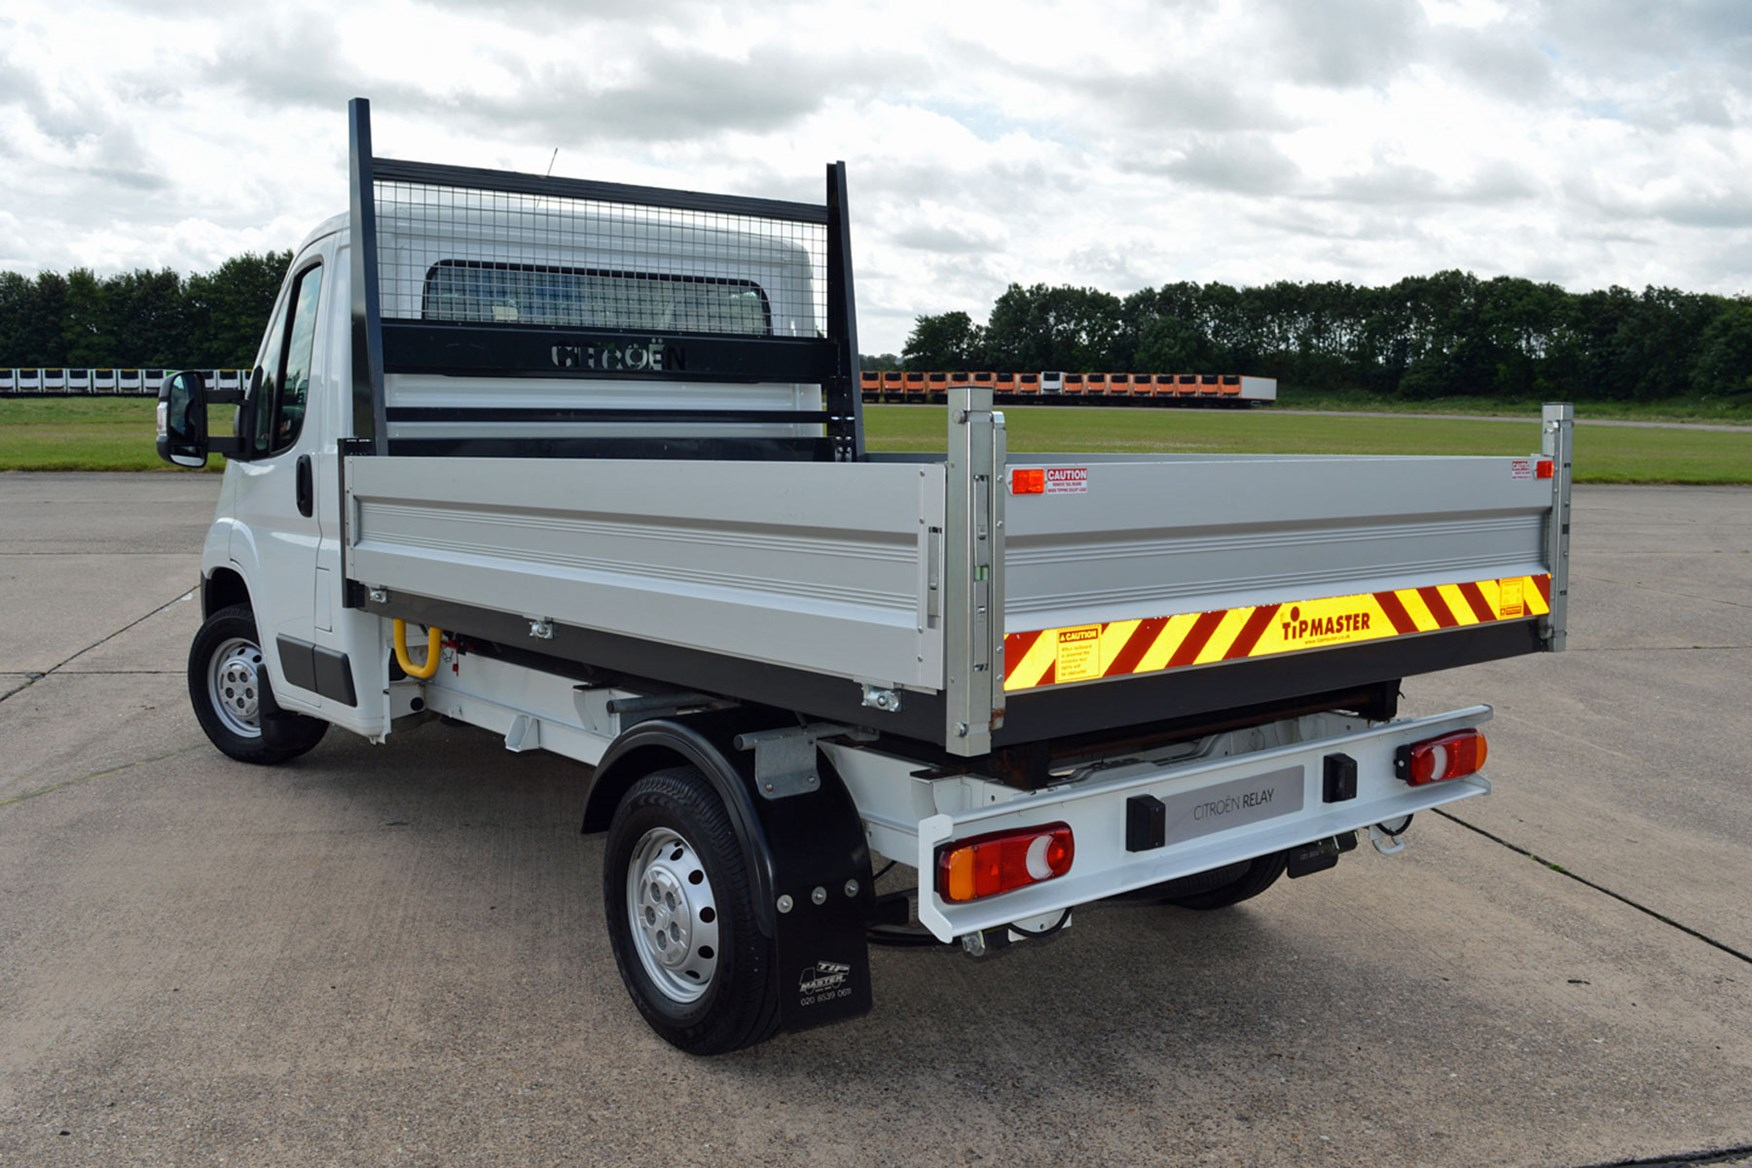 Citroen Relay 2.2 HDi Tipper review - rear view, white